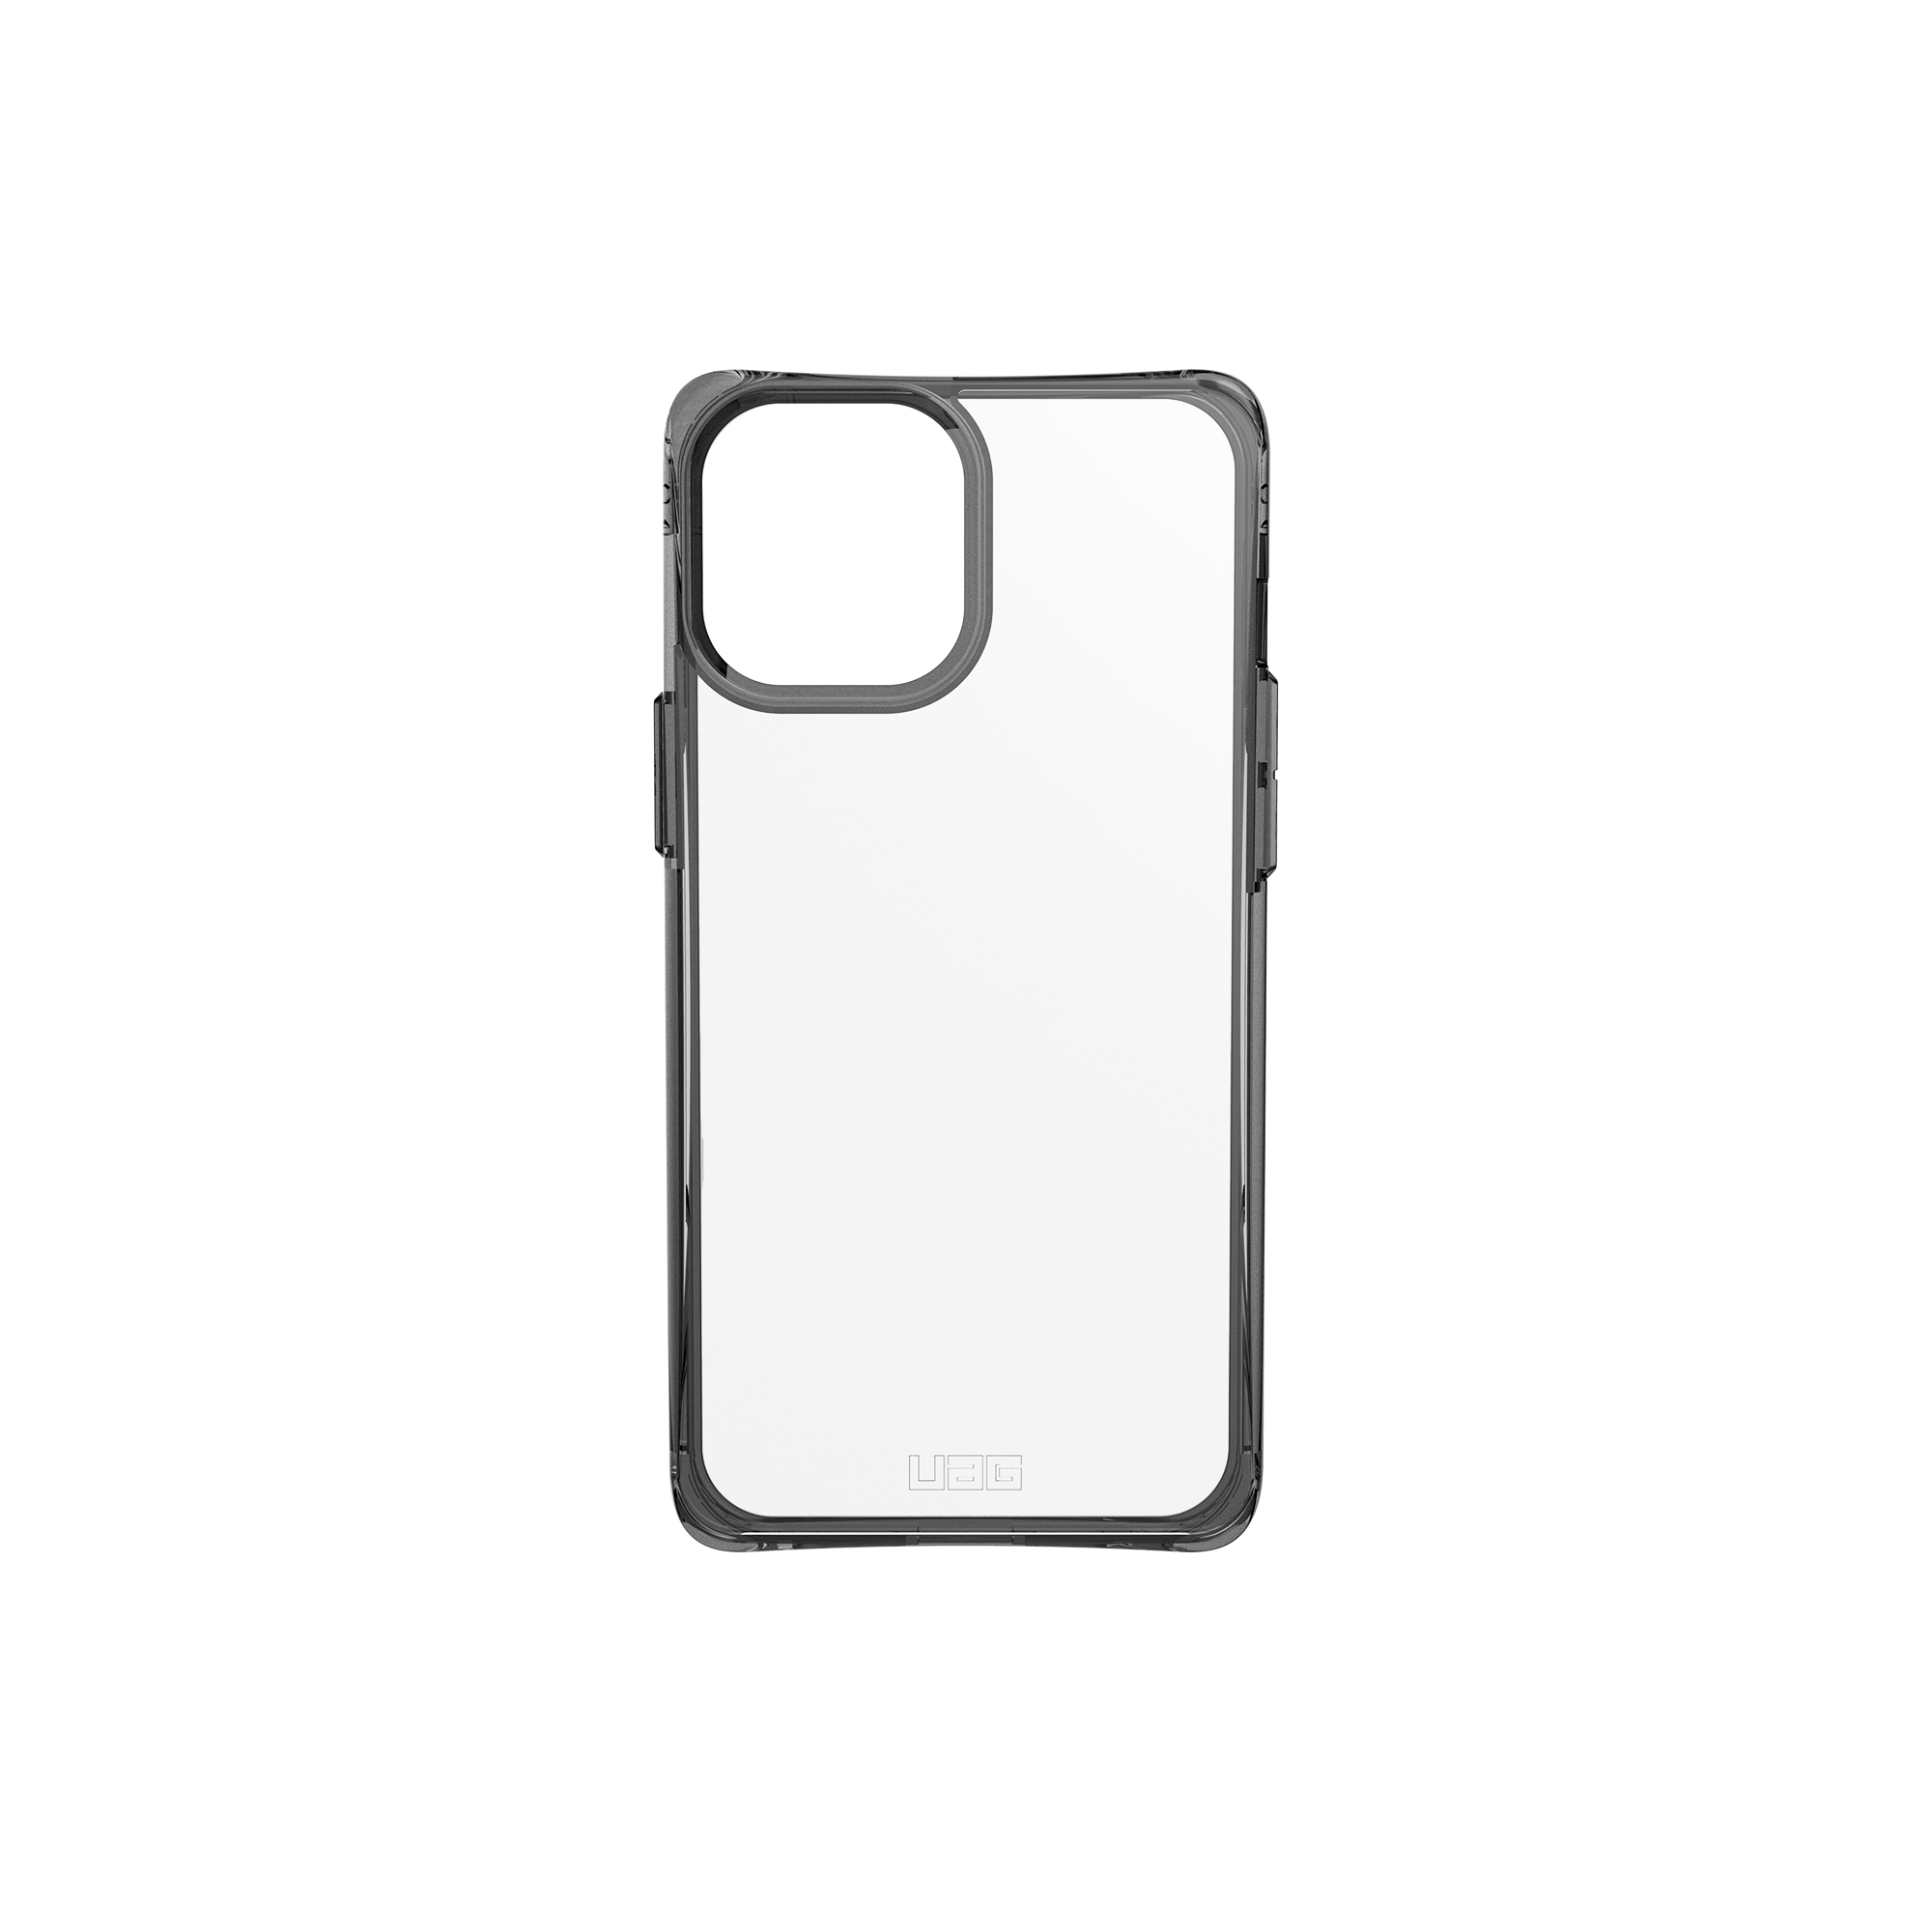 PYLO CASE - ASH FOR IPHONE 12 PRO MAX